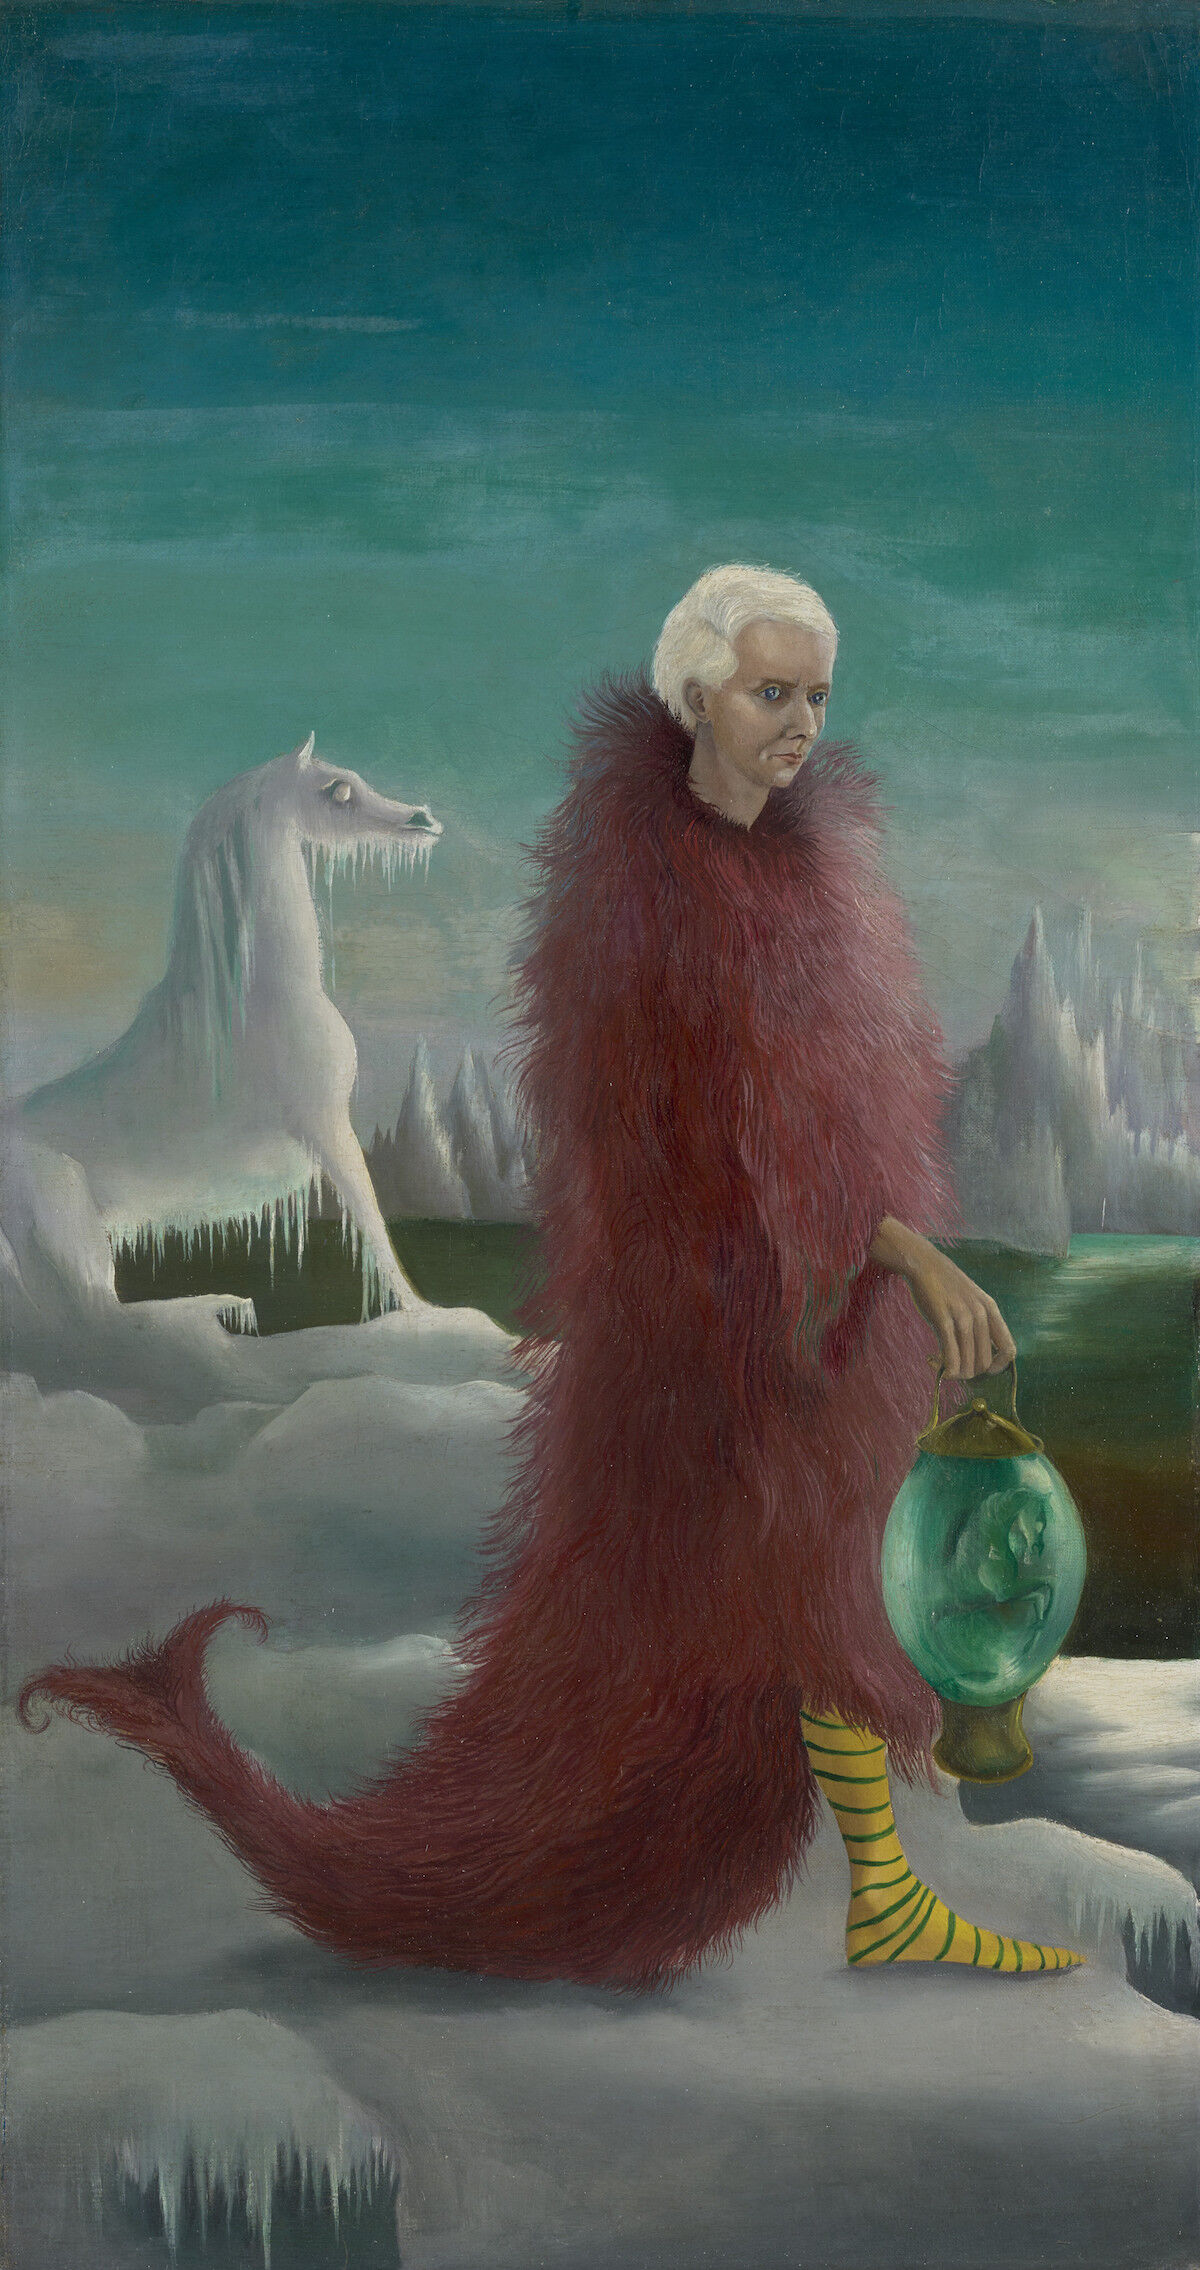 Leonora Carrington, Portrait of Max Ernst, circa 1939,  oil on canvas, 50.3 x 26.8 cm, 19.8 x 10.6 in. Courtesy of the National Galleries of Scotland, copyright the estate of Leonora Carrington, DACS, 2018.